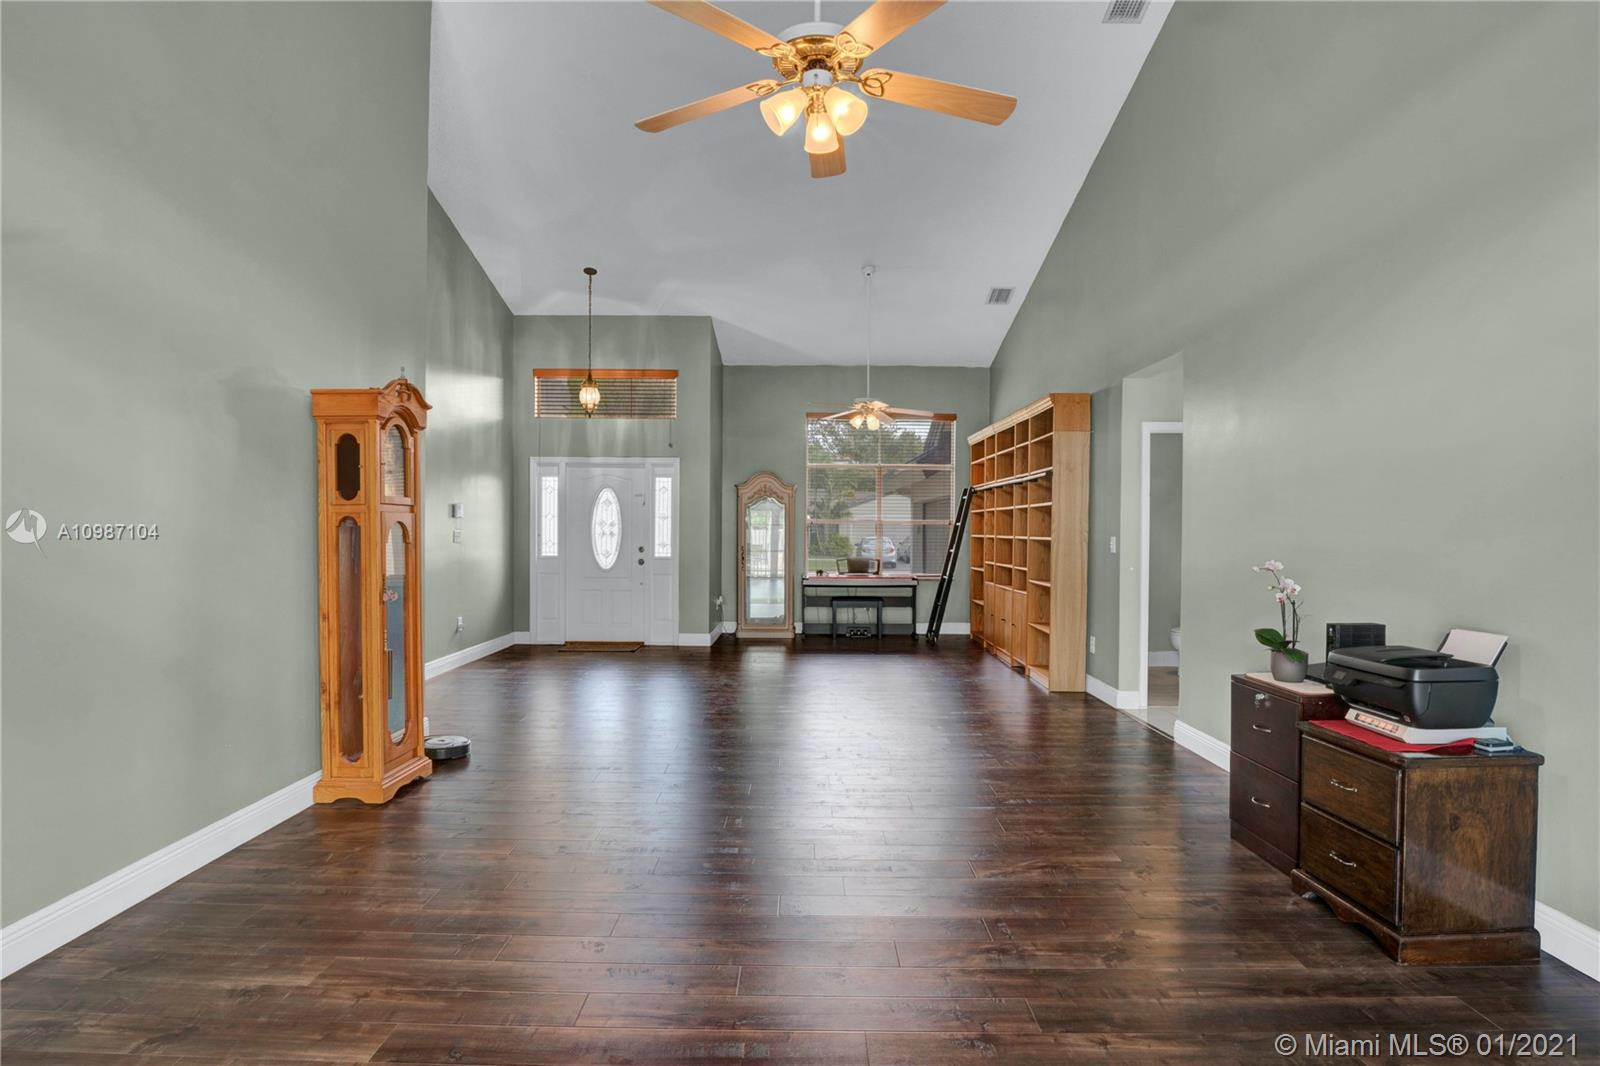 16090 SW 84th Pl, Palmetto Bay, Florida 33157, 4 Bedrooms Bedrooms, ,3 BathroomsBathrooms,Residential,For Sale,16090 SW 84th Pl,A10987104